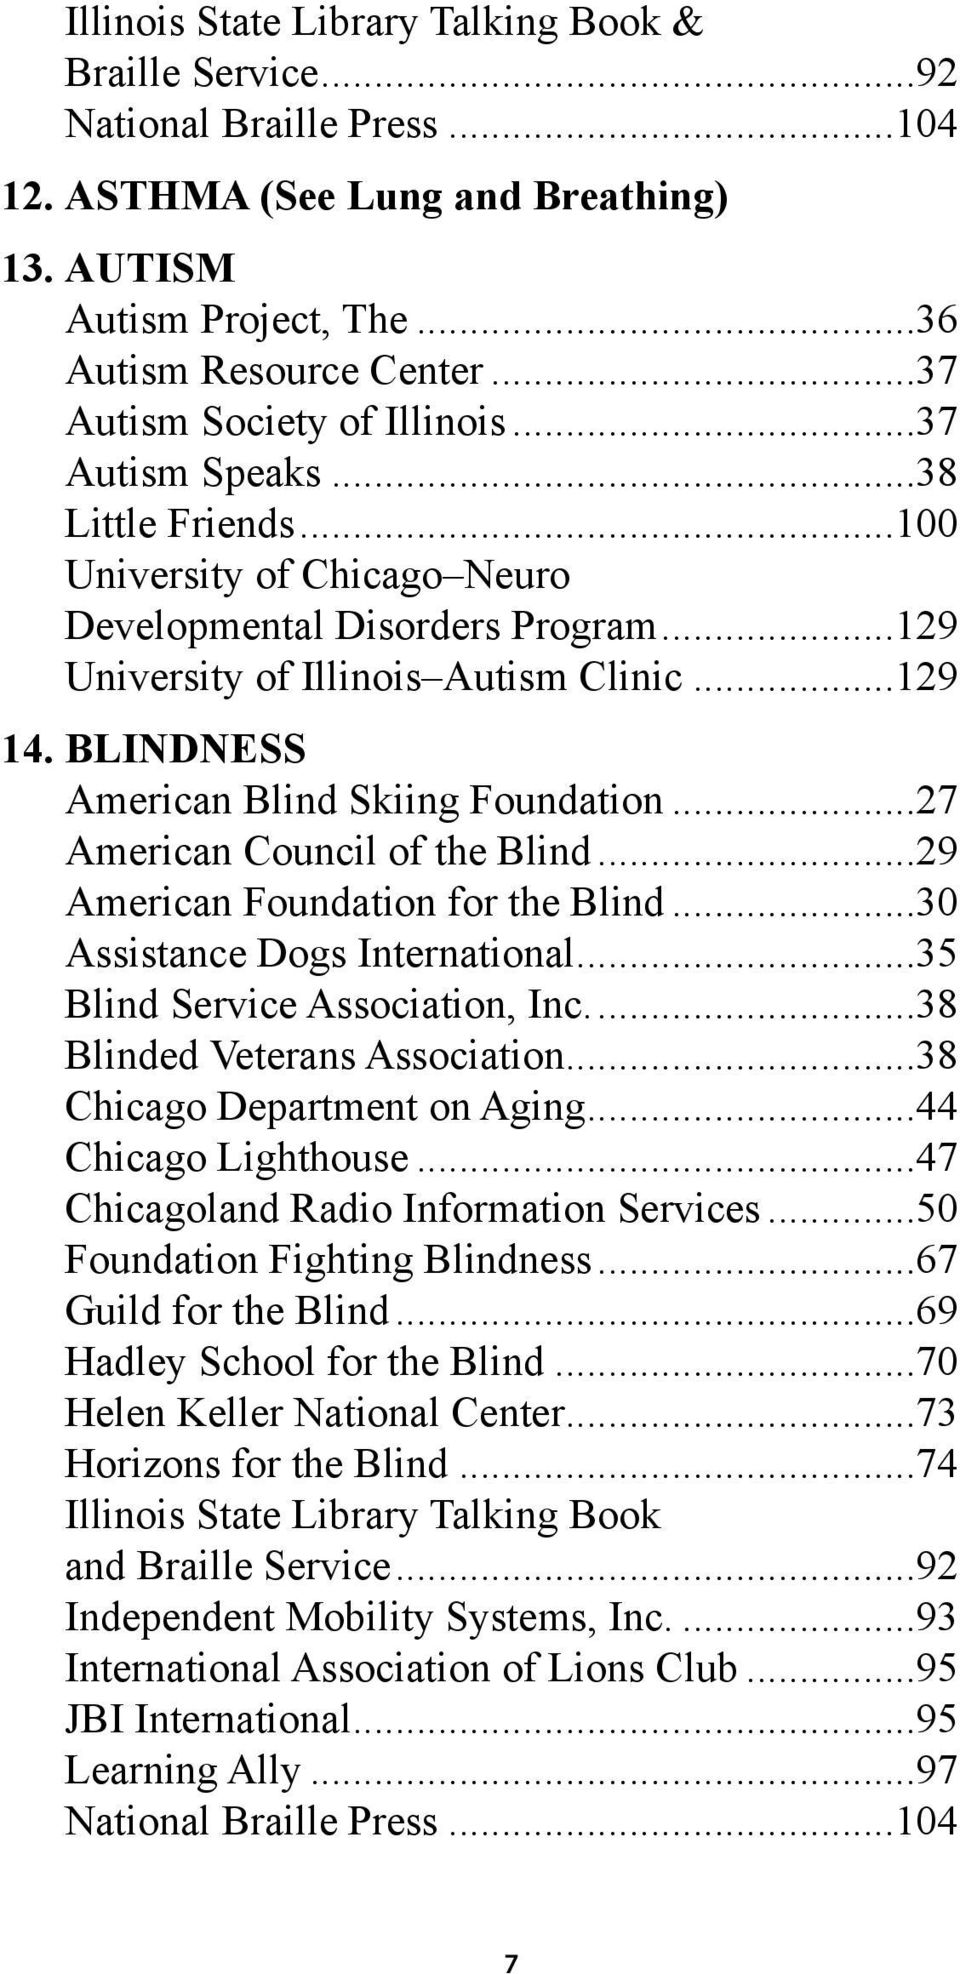 BLINDNESS American Blind Skiing Foundation...27 American Council of the Blind...29 American Foundation for the Blind...30 Assistance Dogs International...35 Blind Service Association, Inc.